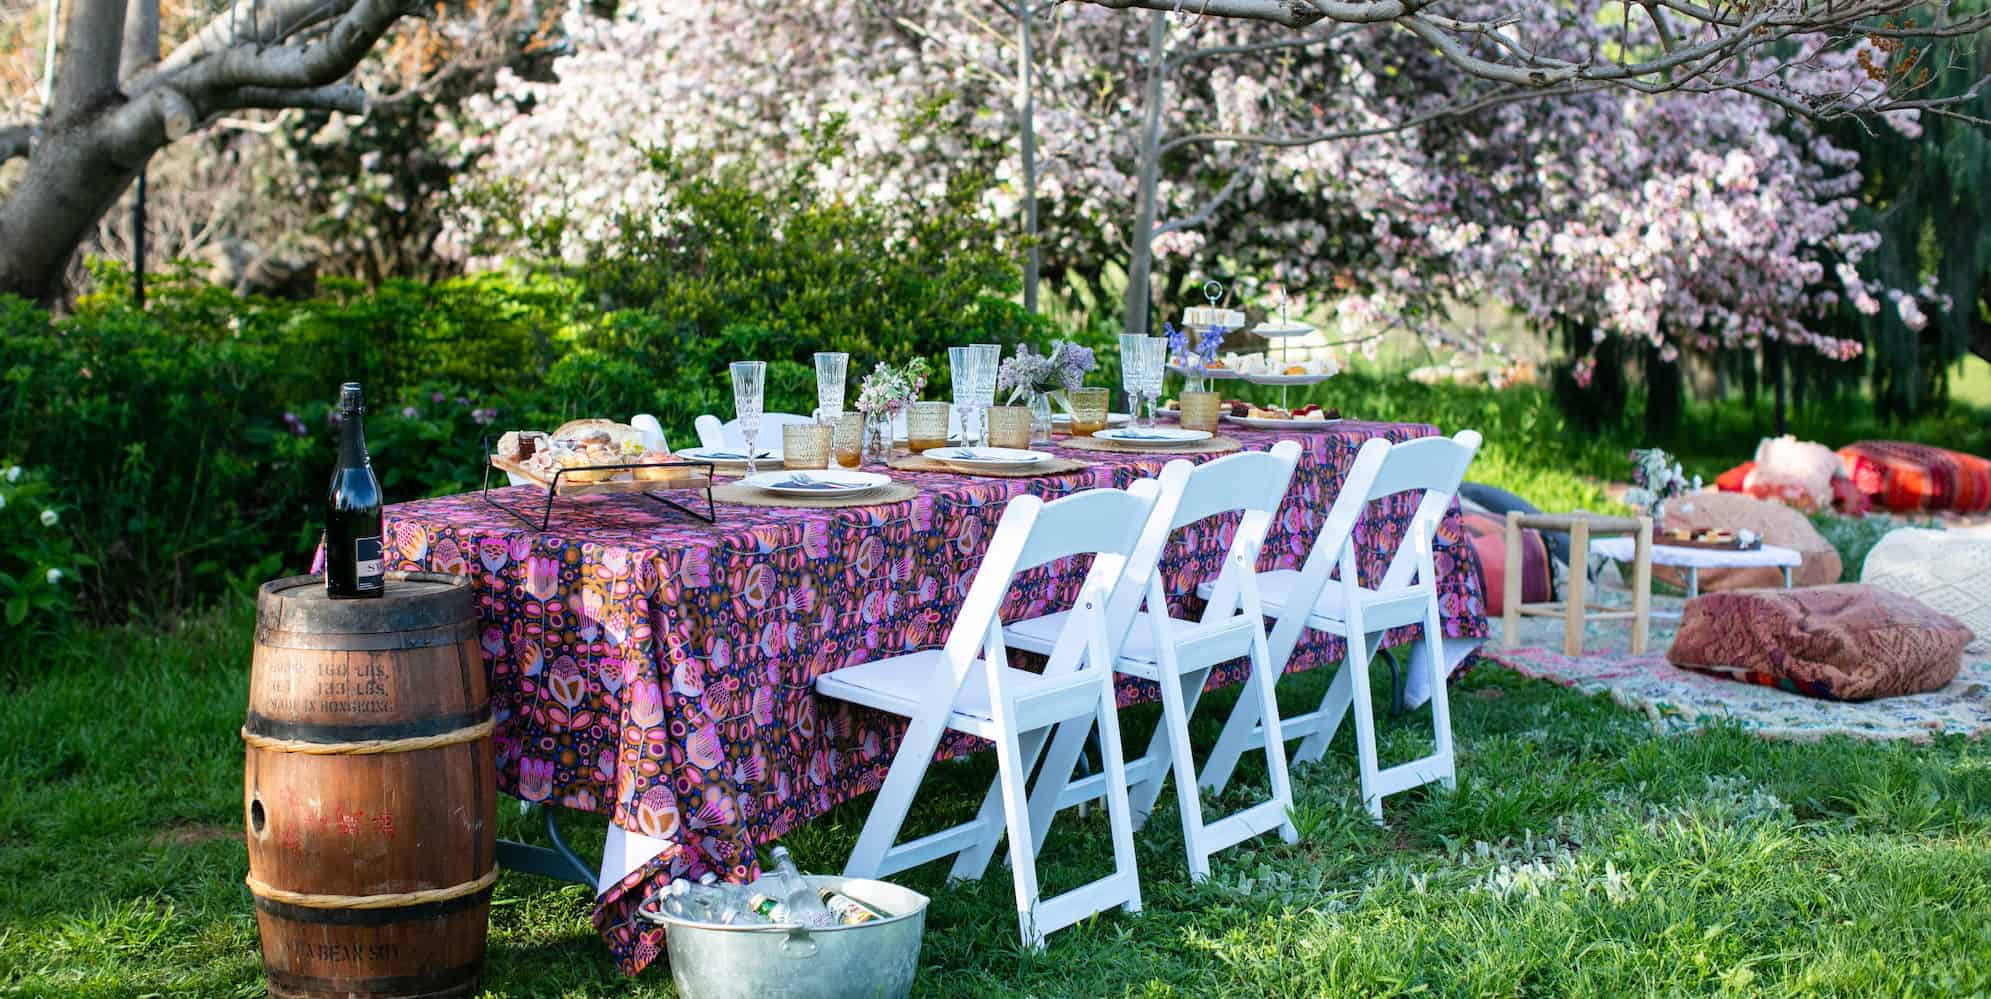 Luxury picnic table setting